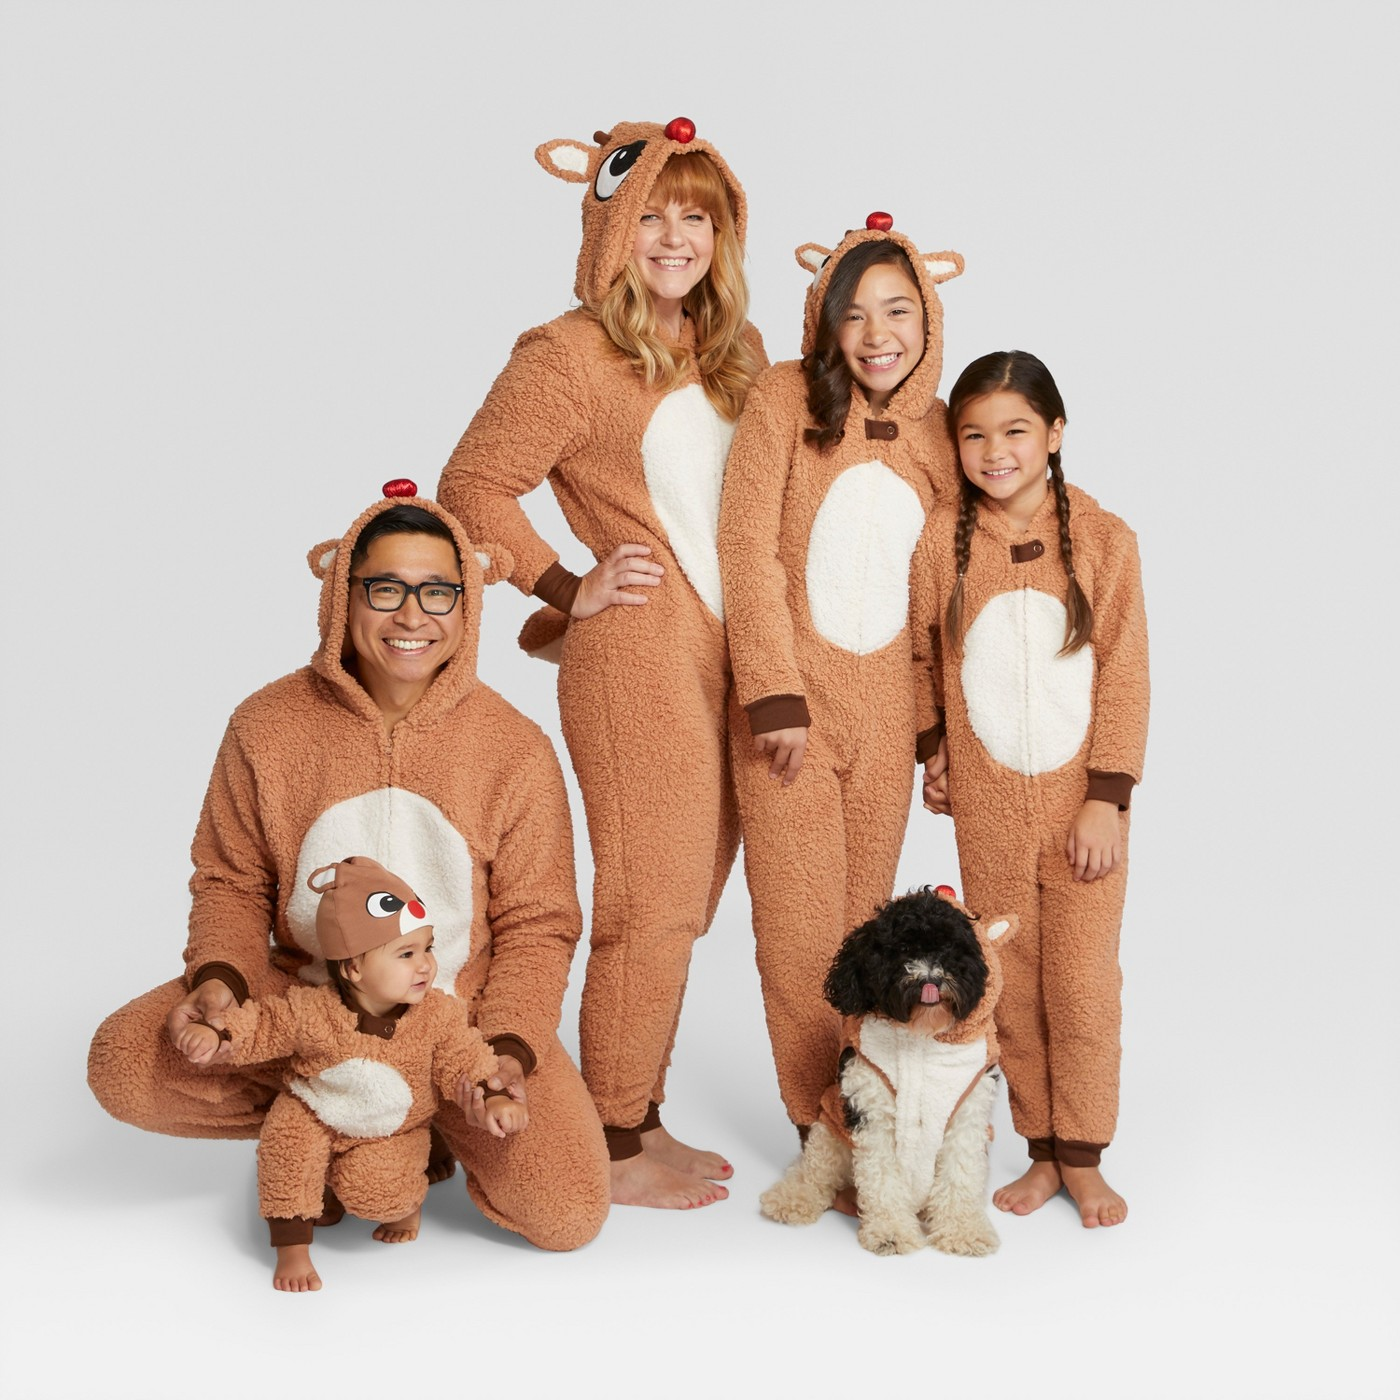 Family Christmas pajamas - love the Rudolph pajamas kellyelko.com #christmaspajamas #christmas #christmastraditions